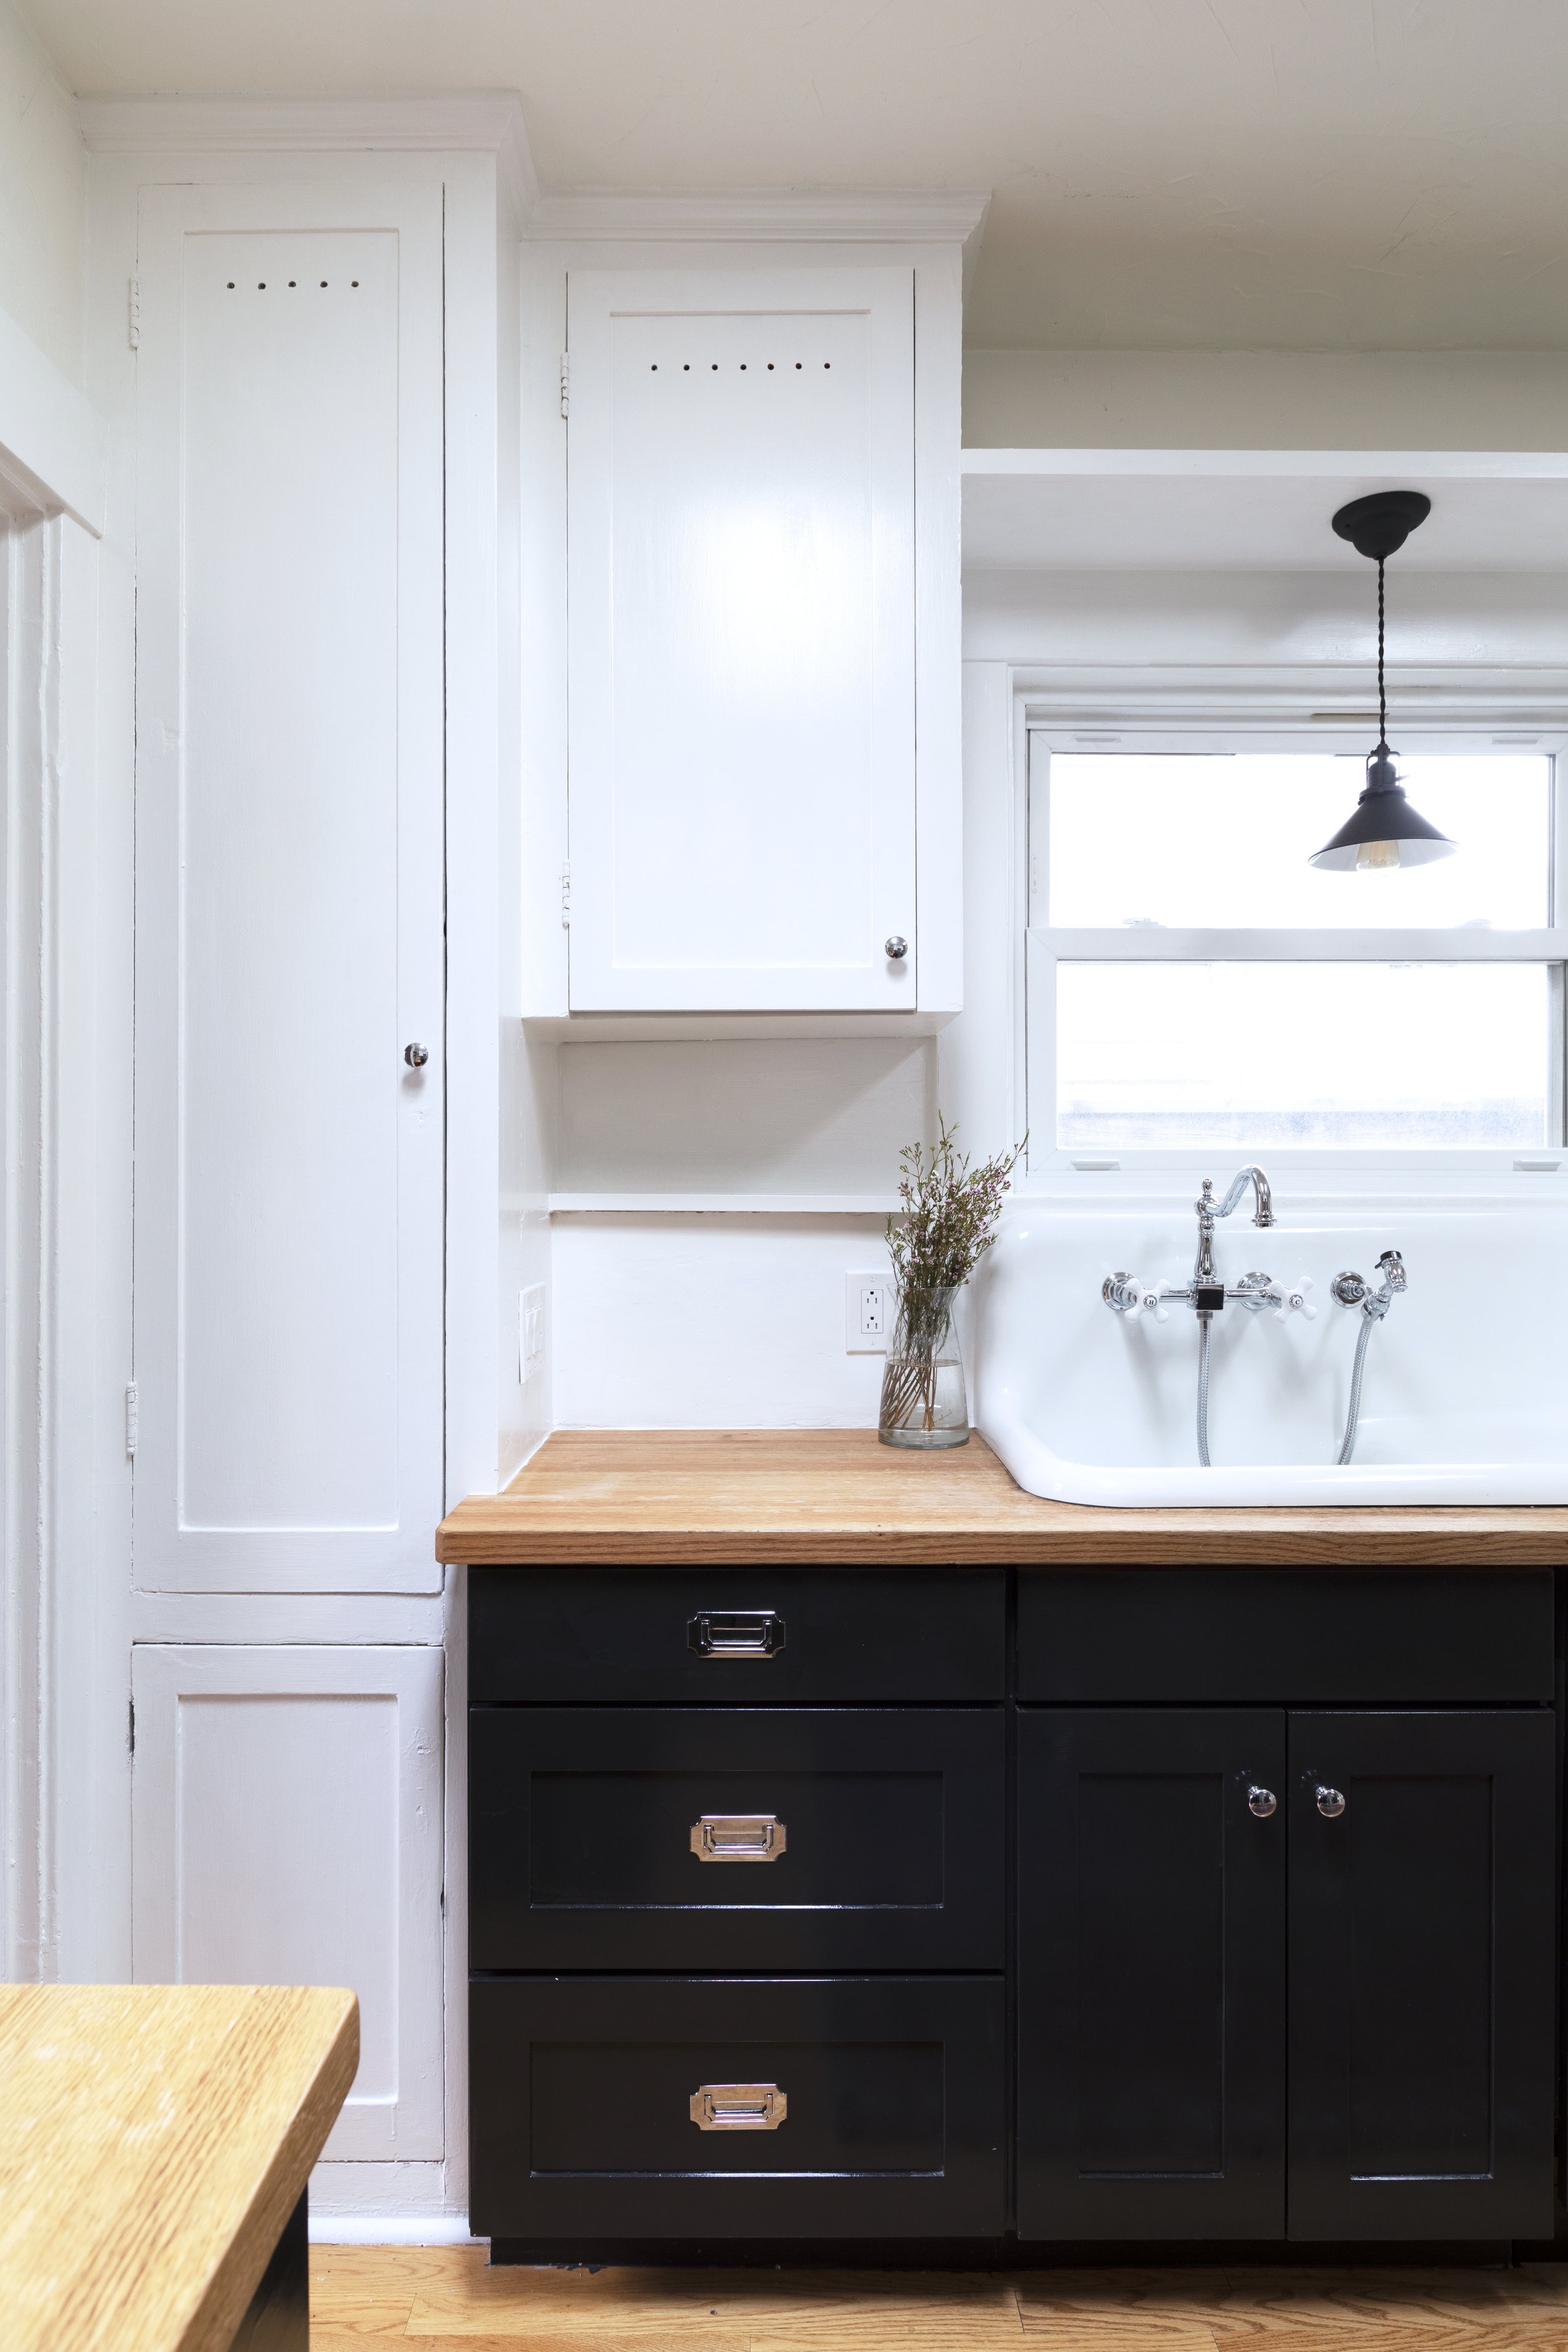 The Grit and Polish - Dexter Kitchen Pie Safe Cabinets.jpg